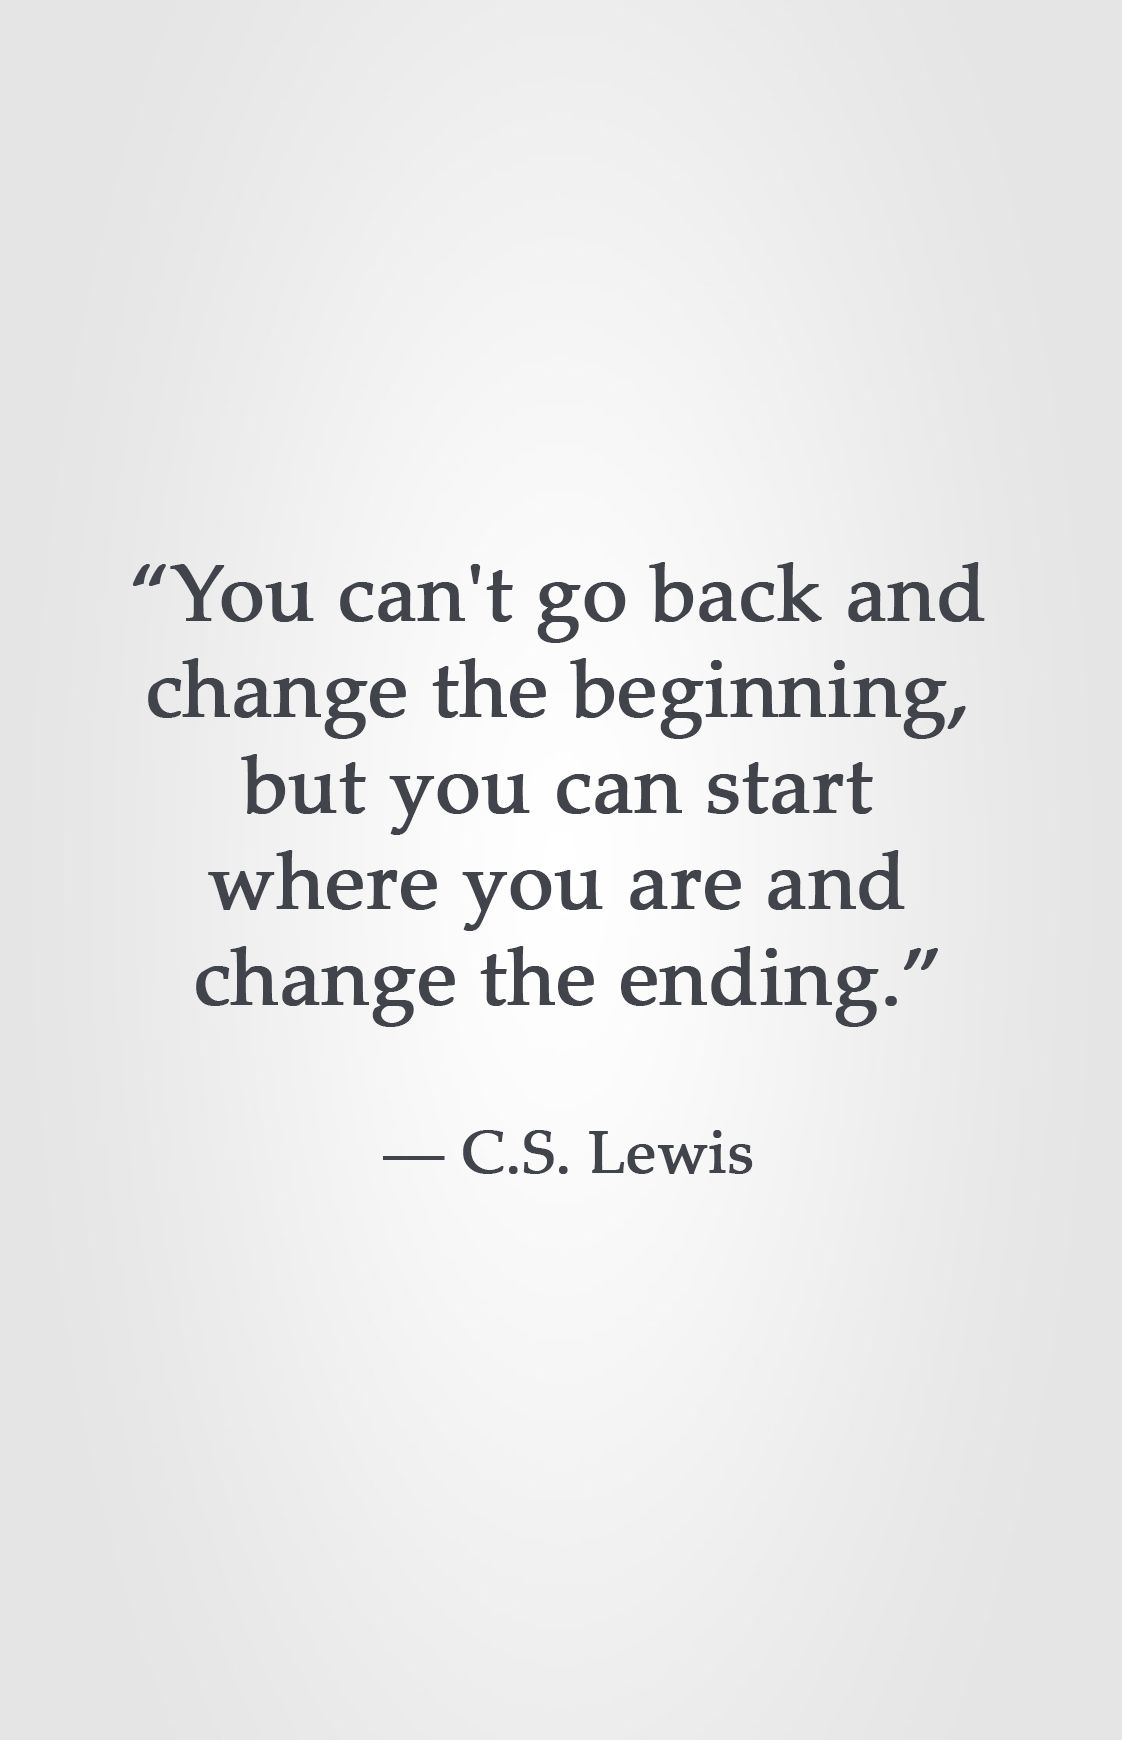 Quotes About Change You Can't Go Back And Change The Beginning But You Can Start Where .